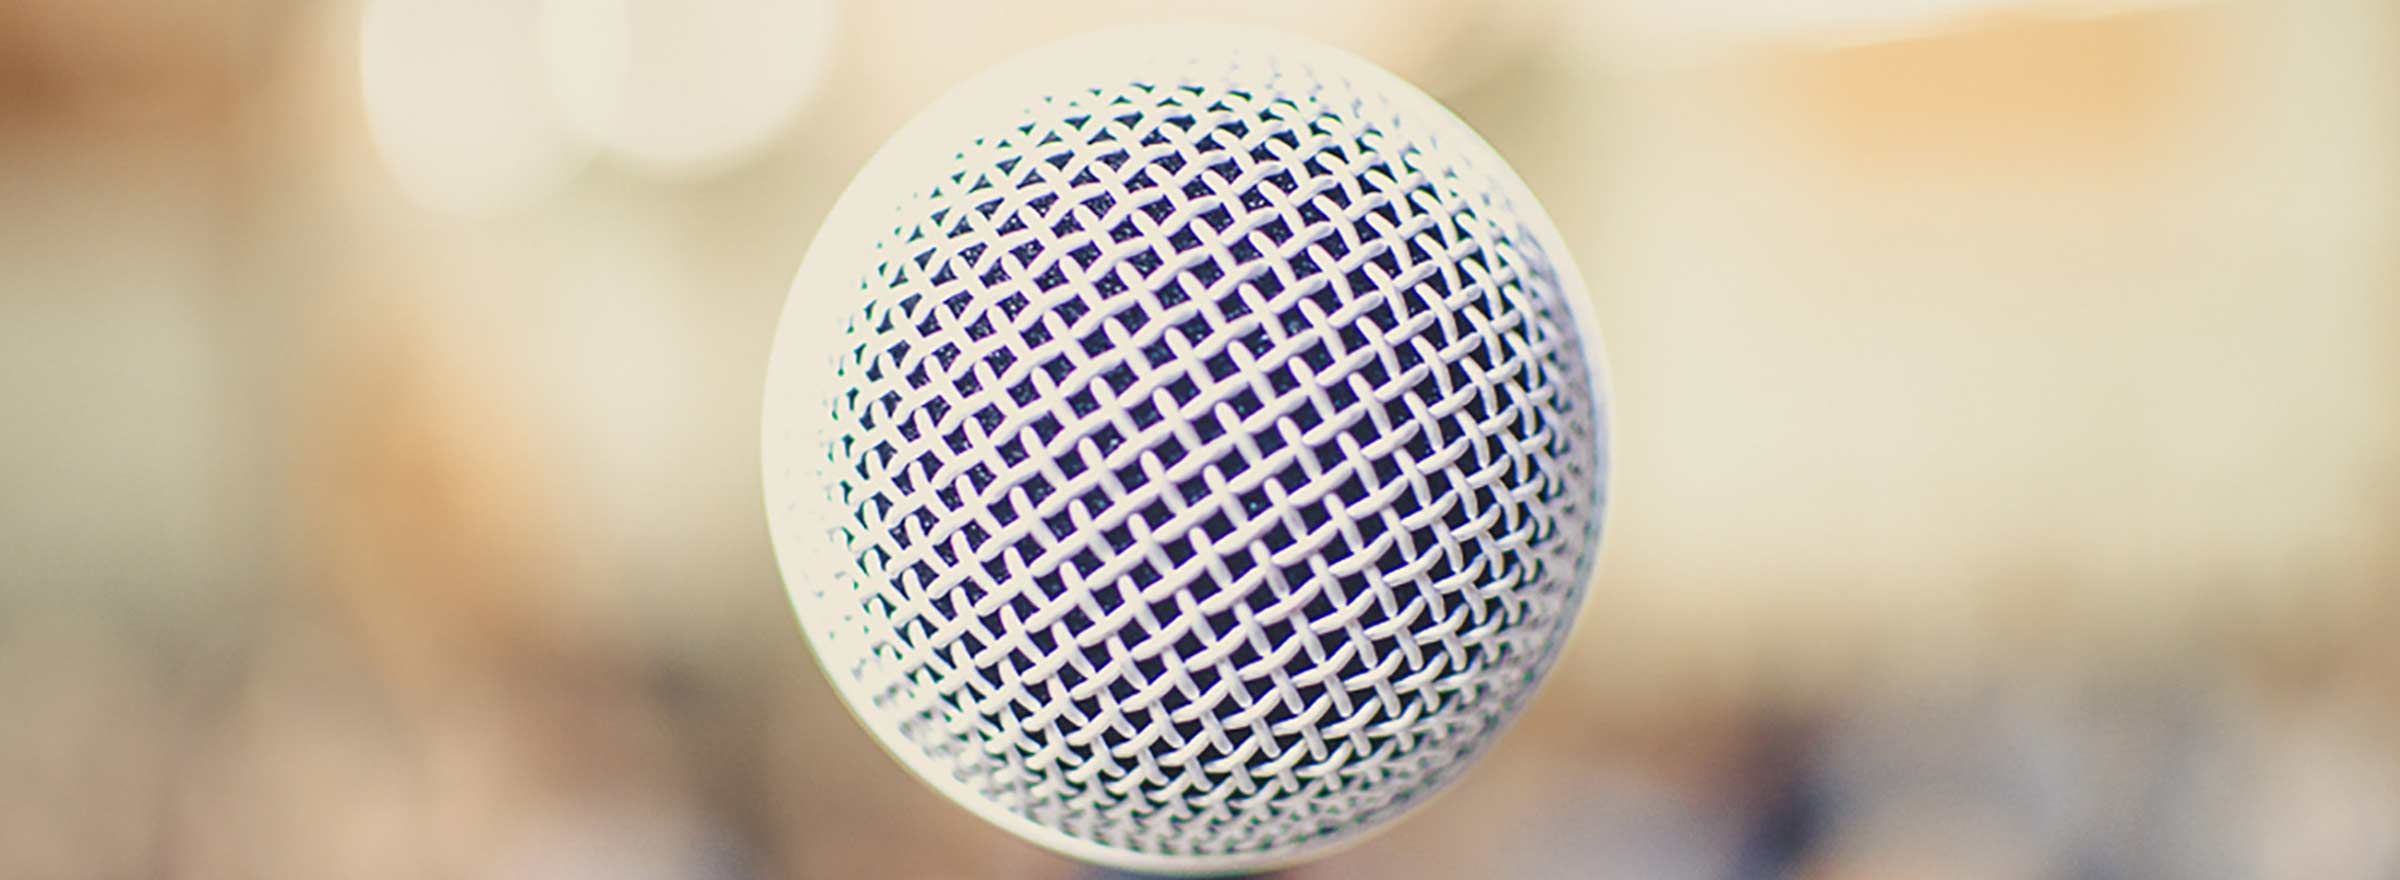 a close-up view of a microphone symbolizing social impact technology panels at sxsw